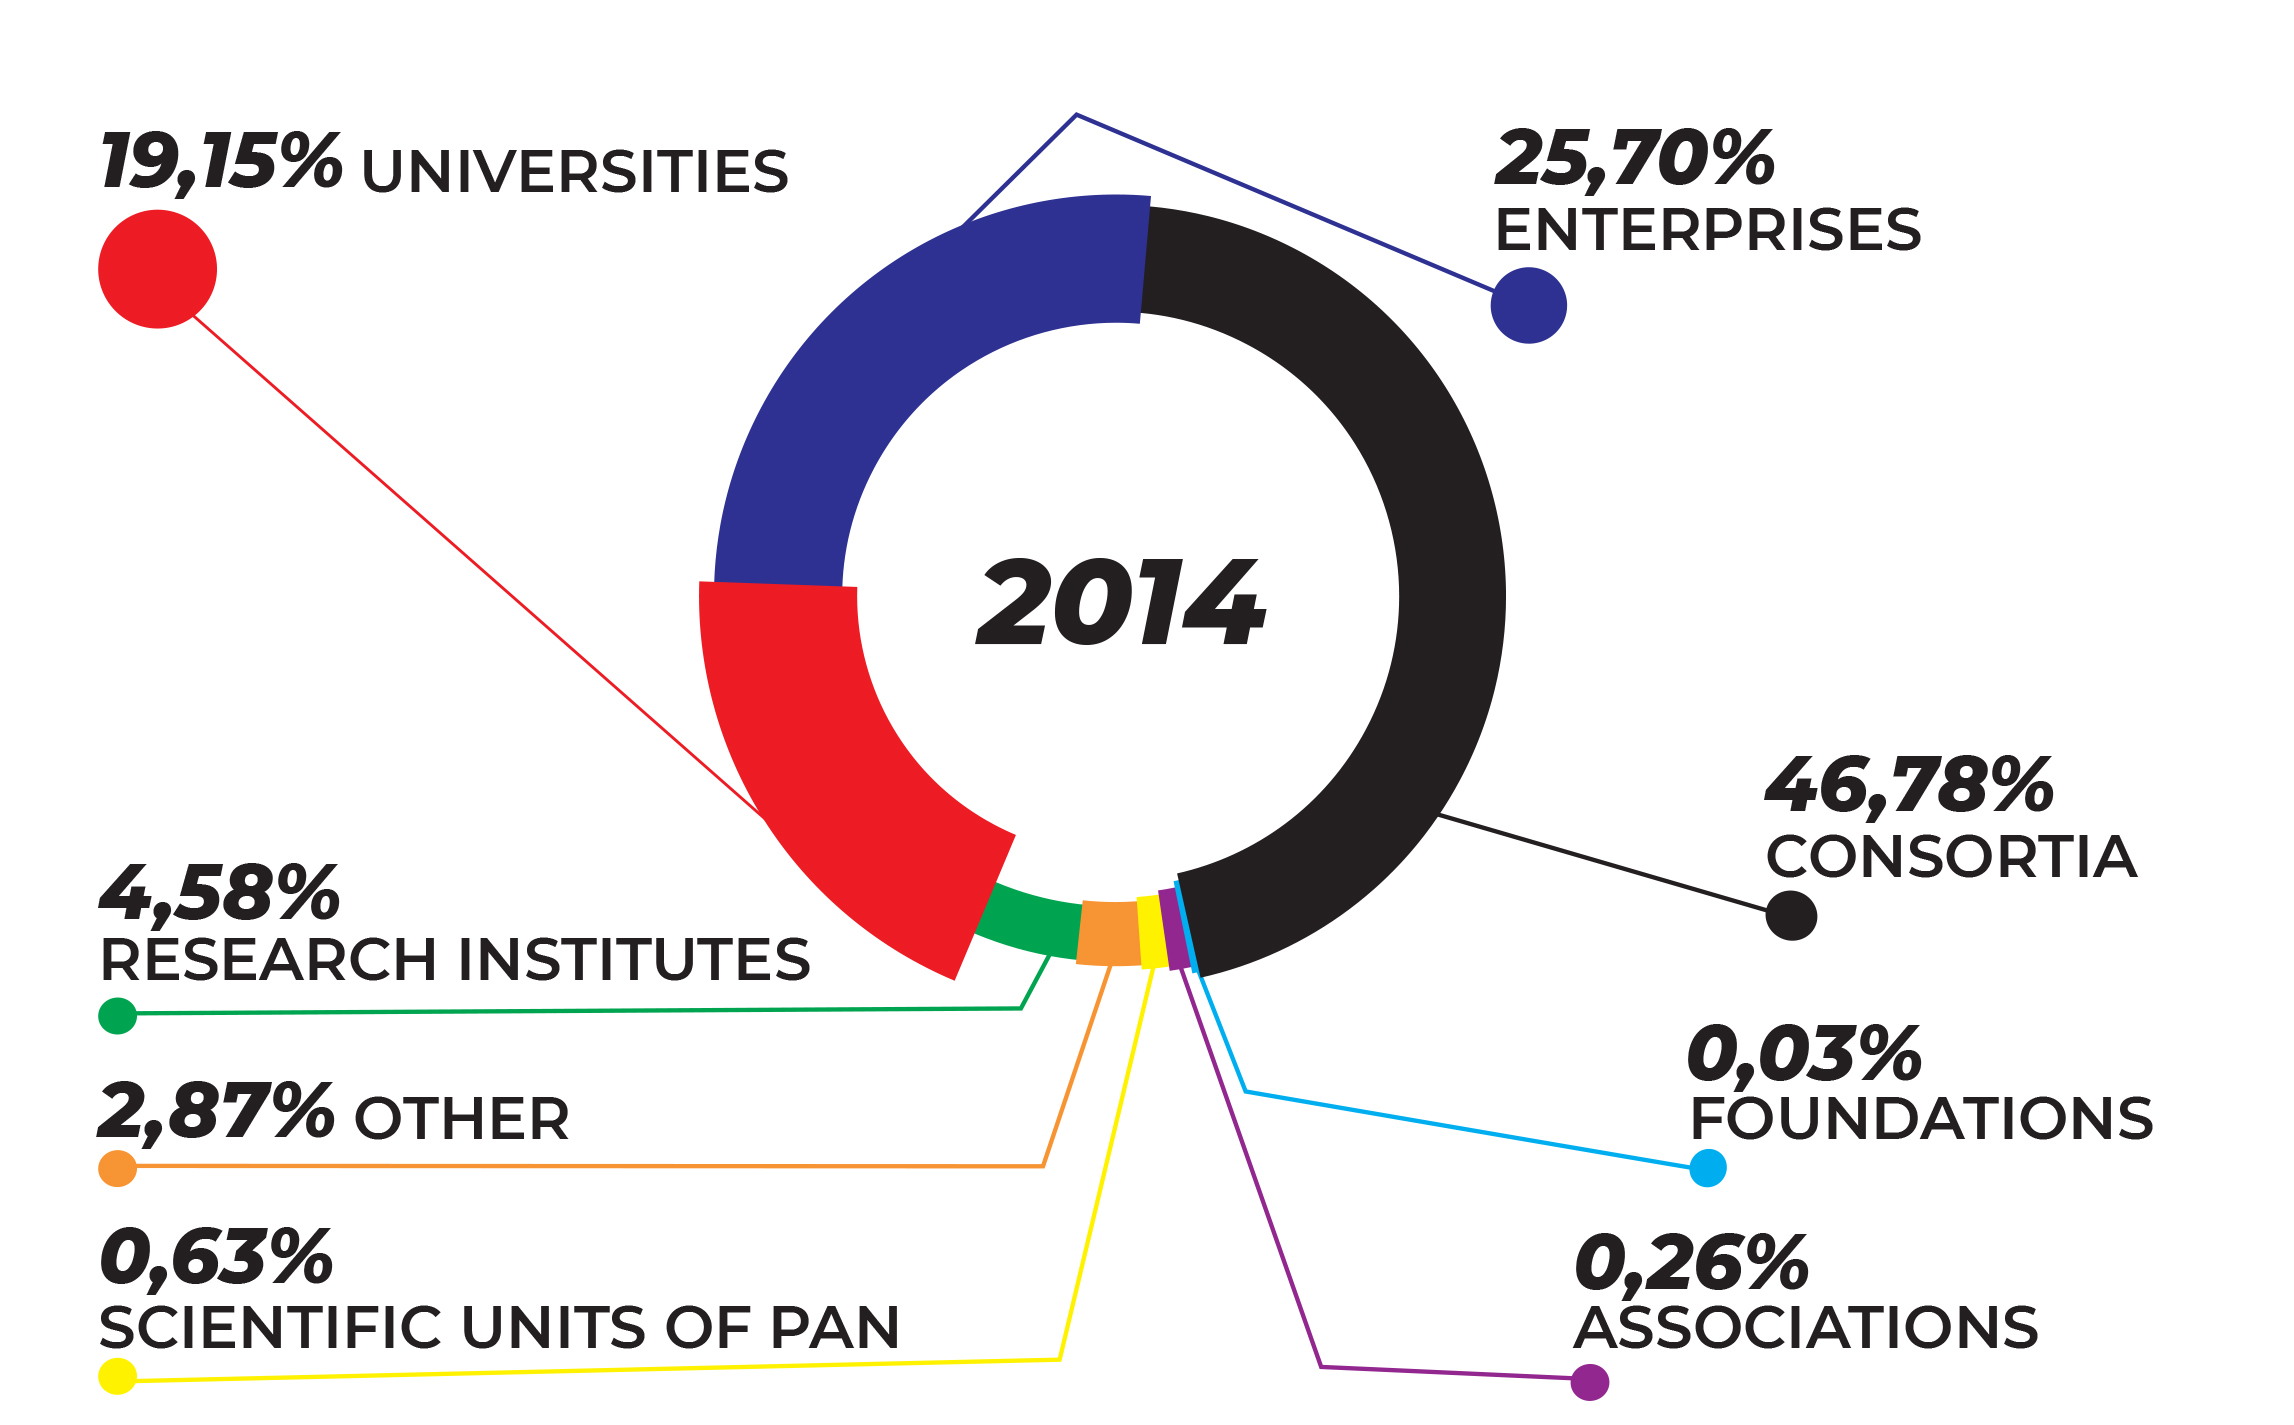 THE CHART SHOWS THE BENEFICIARIES' SHARE IN THE TOTAL FUNDING AMOUNT, DEPENDING ON THEIR LEGAL FORM IN 2014